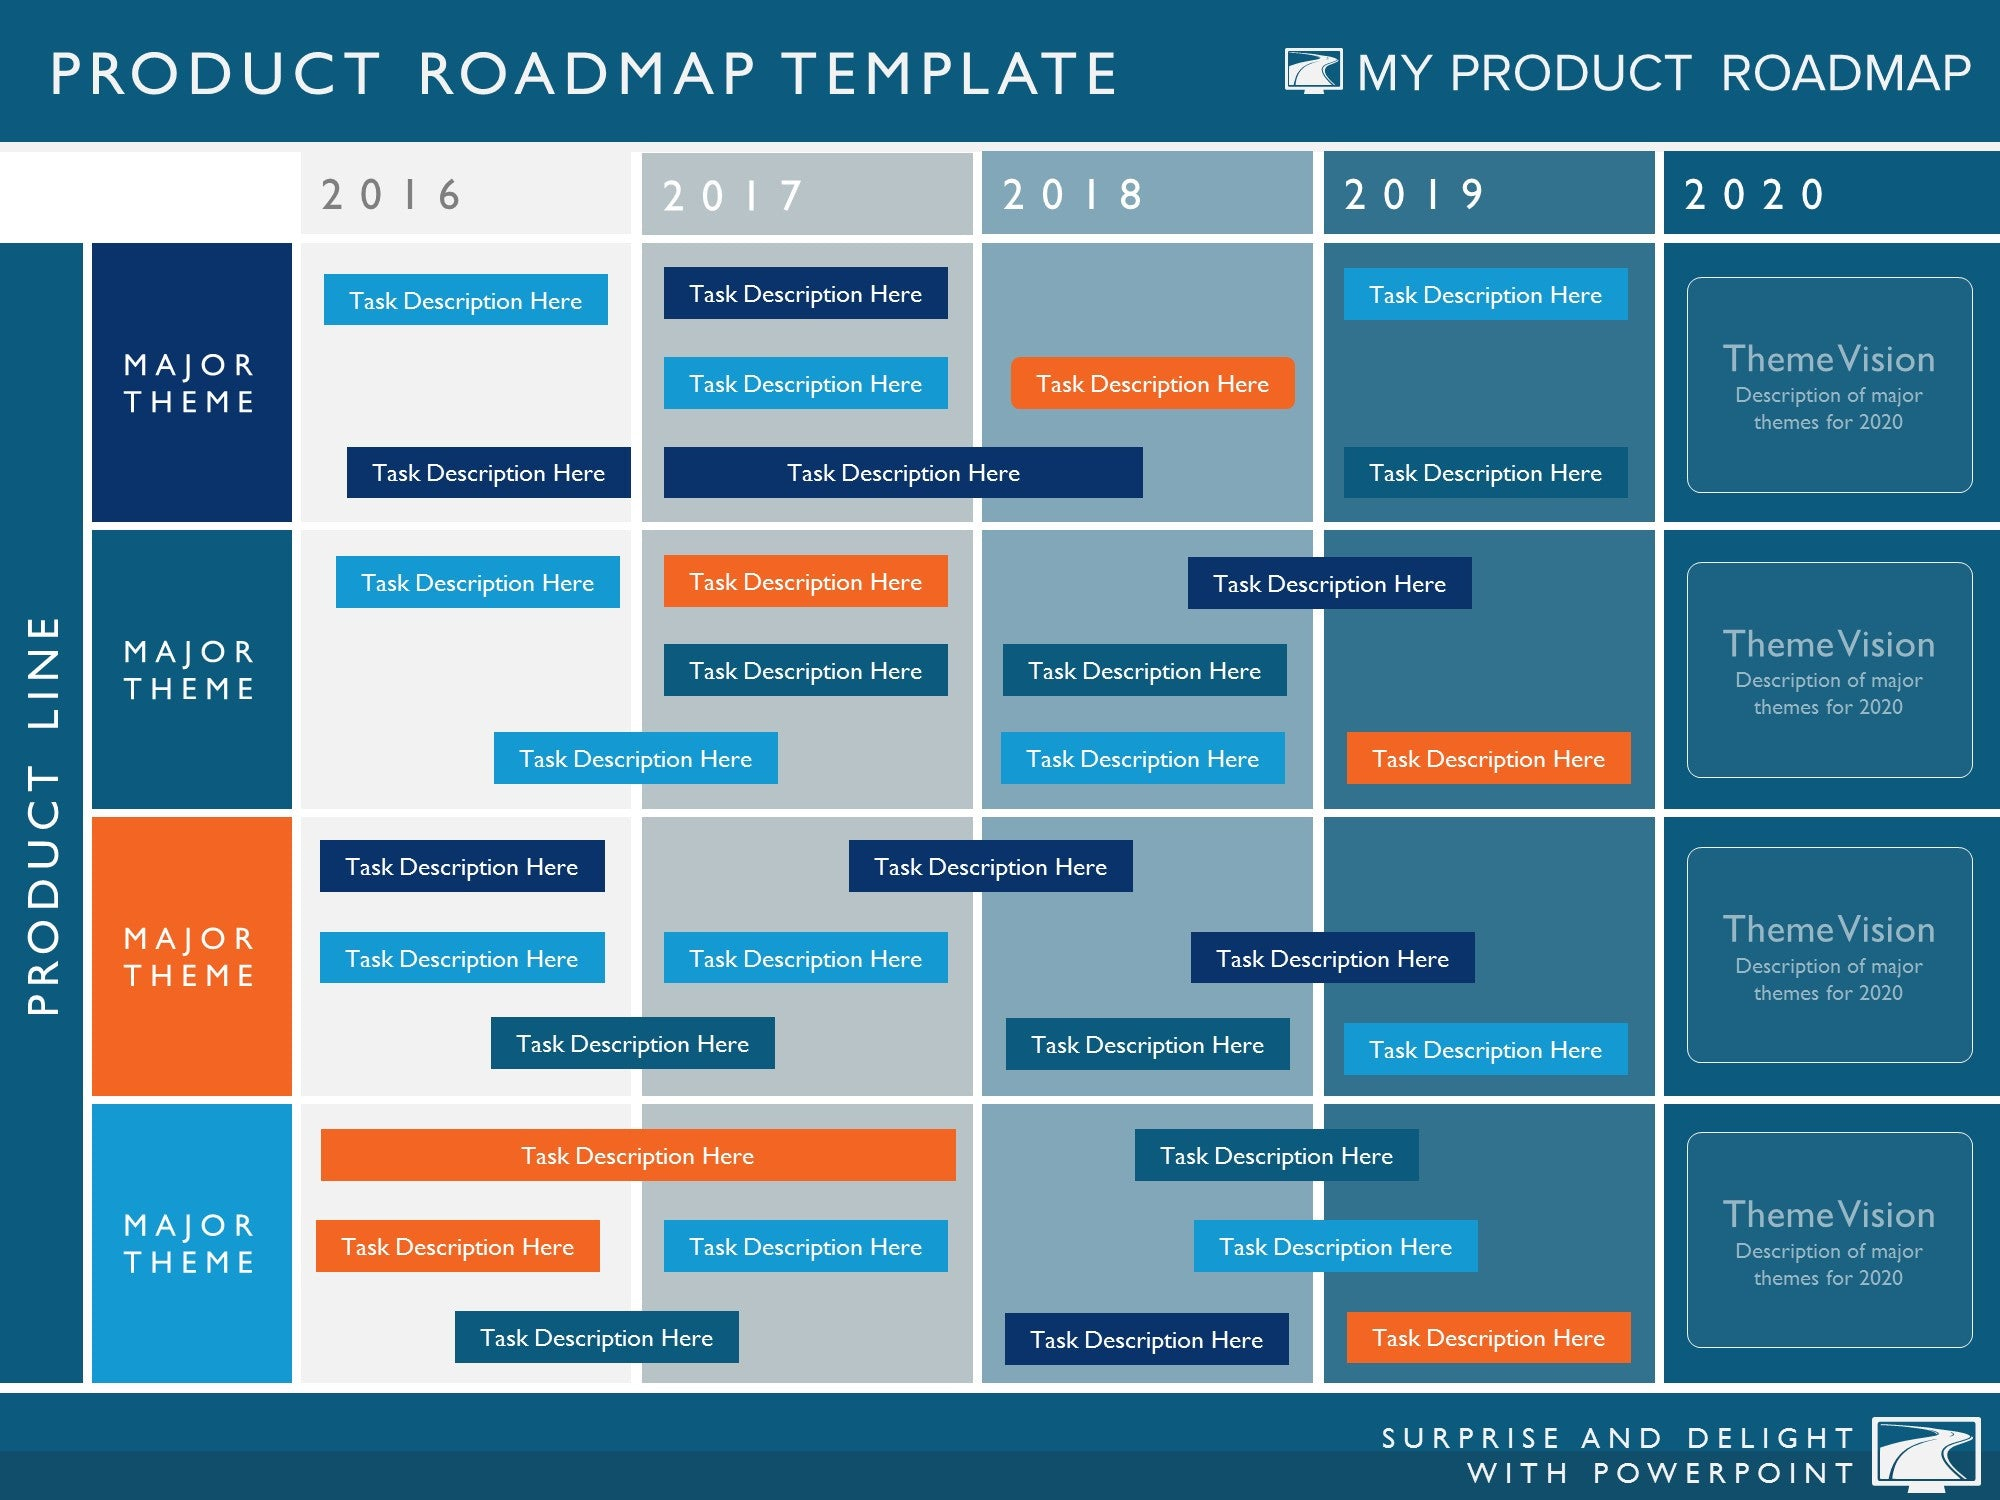 Agile roadmap templates for powerpoint product strategy development cycle planning timeline templates stages software management tools ppt manager marketing roadmap template maxwellsz